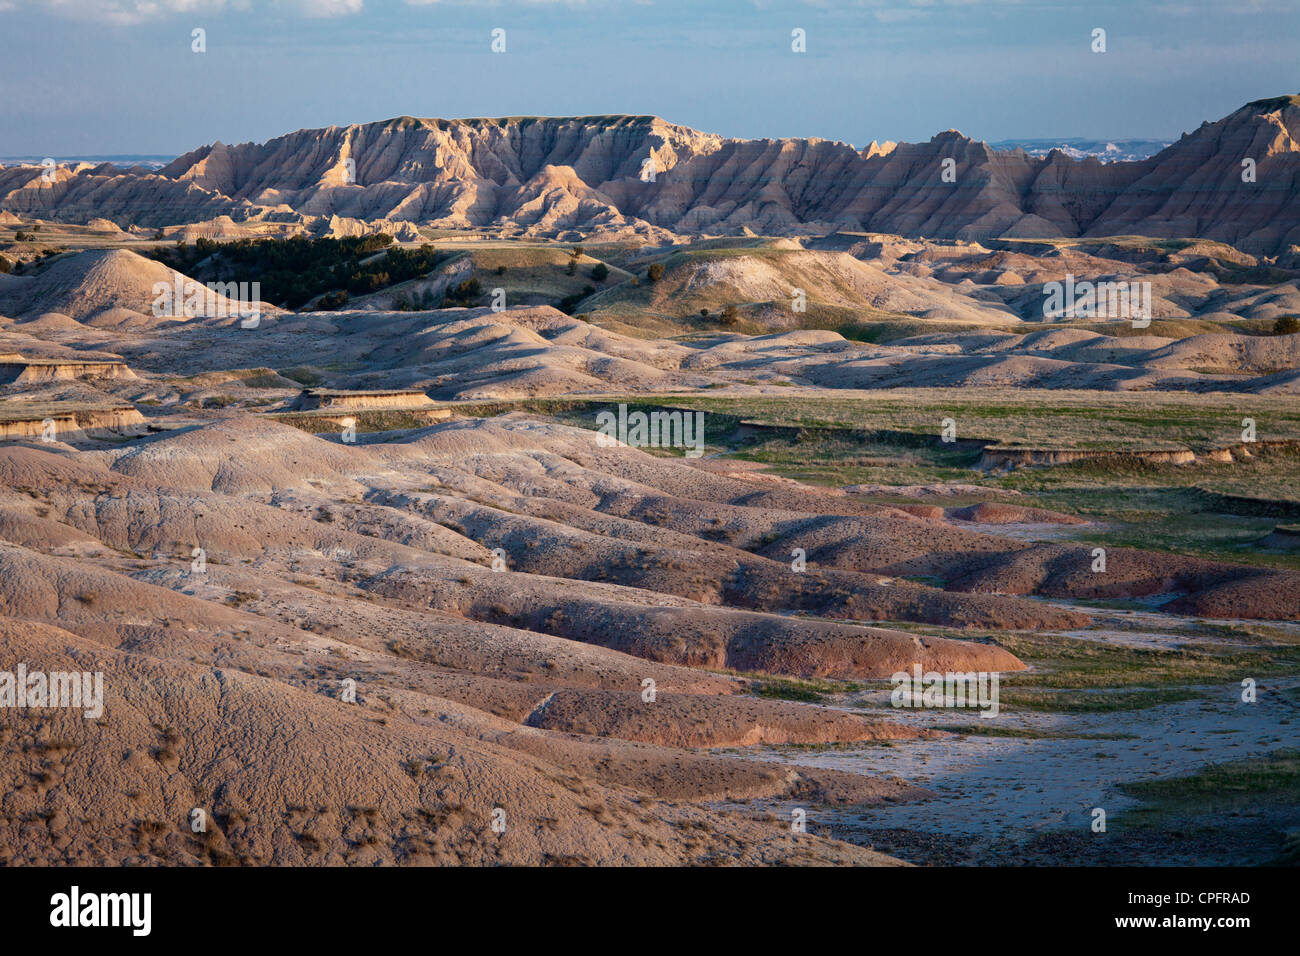 Badlands National Park, South Dakota, USA - Stock Image